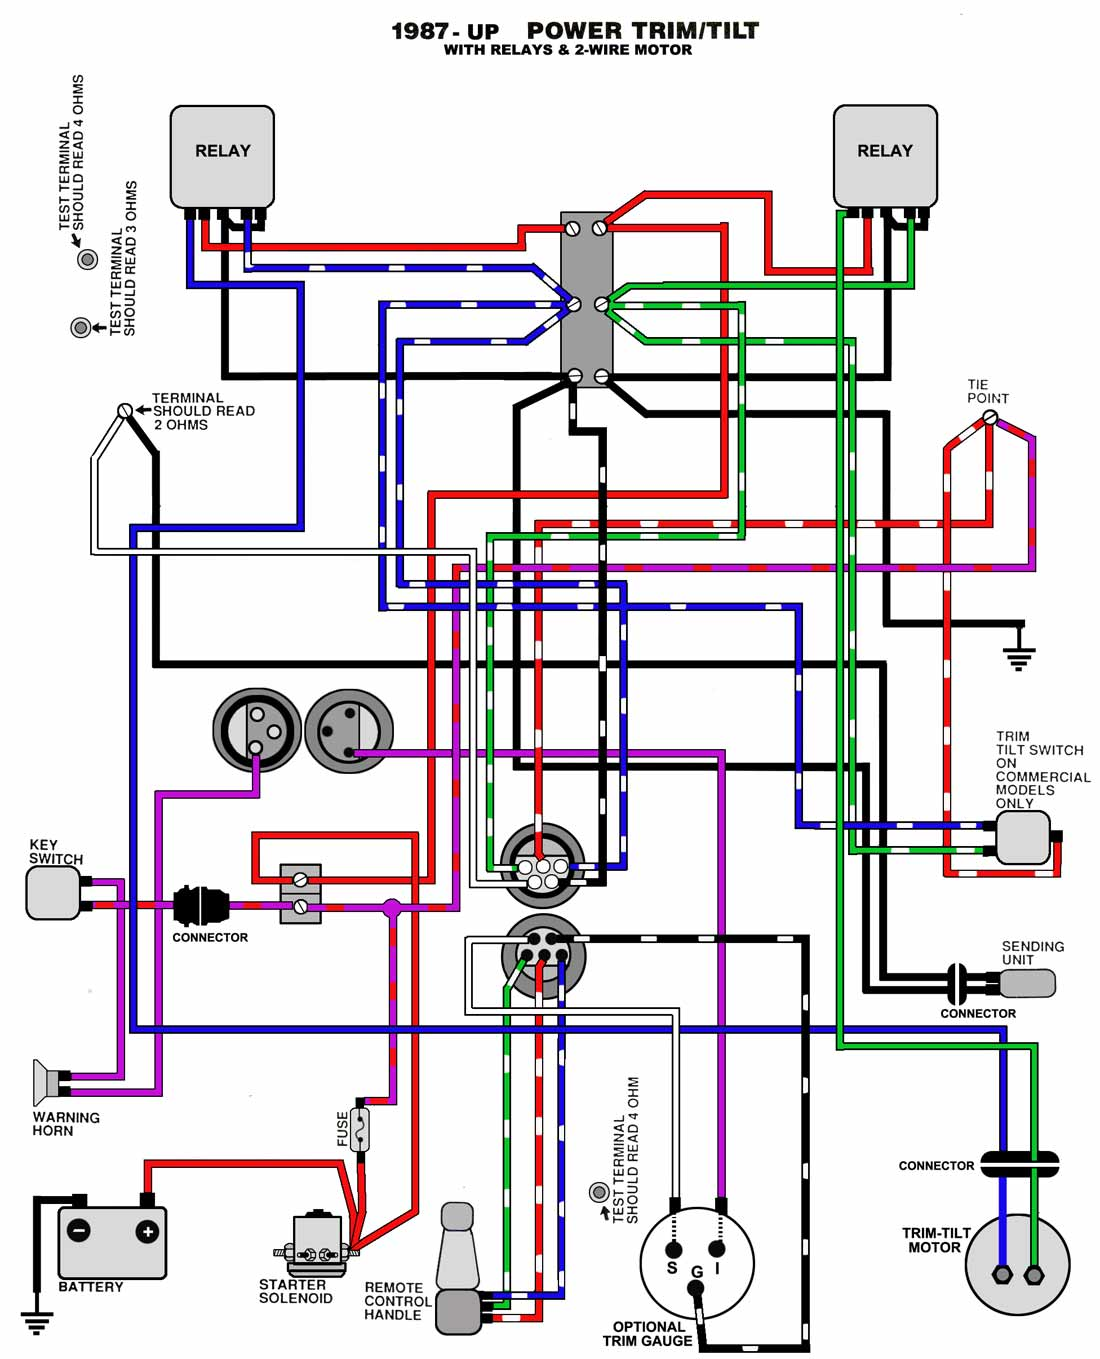 TnT_87_UP?resize=680%2C840 1969 johnson outboard wiring diagram 1969 johnson 55 hp outboard omc tachometer wiring diagram at soozxer.org